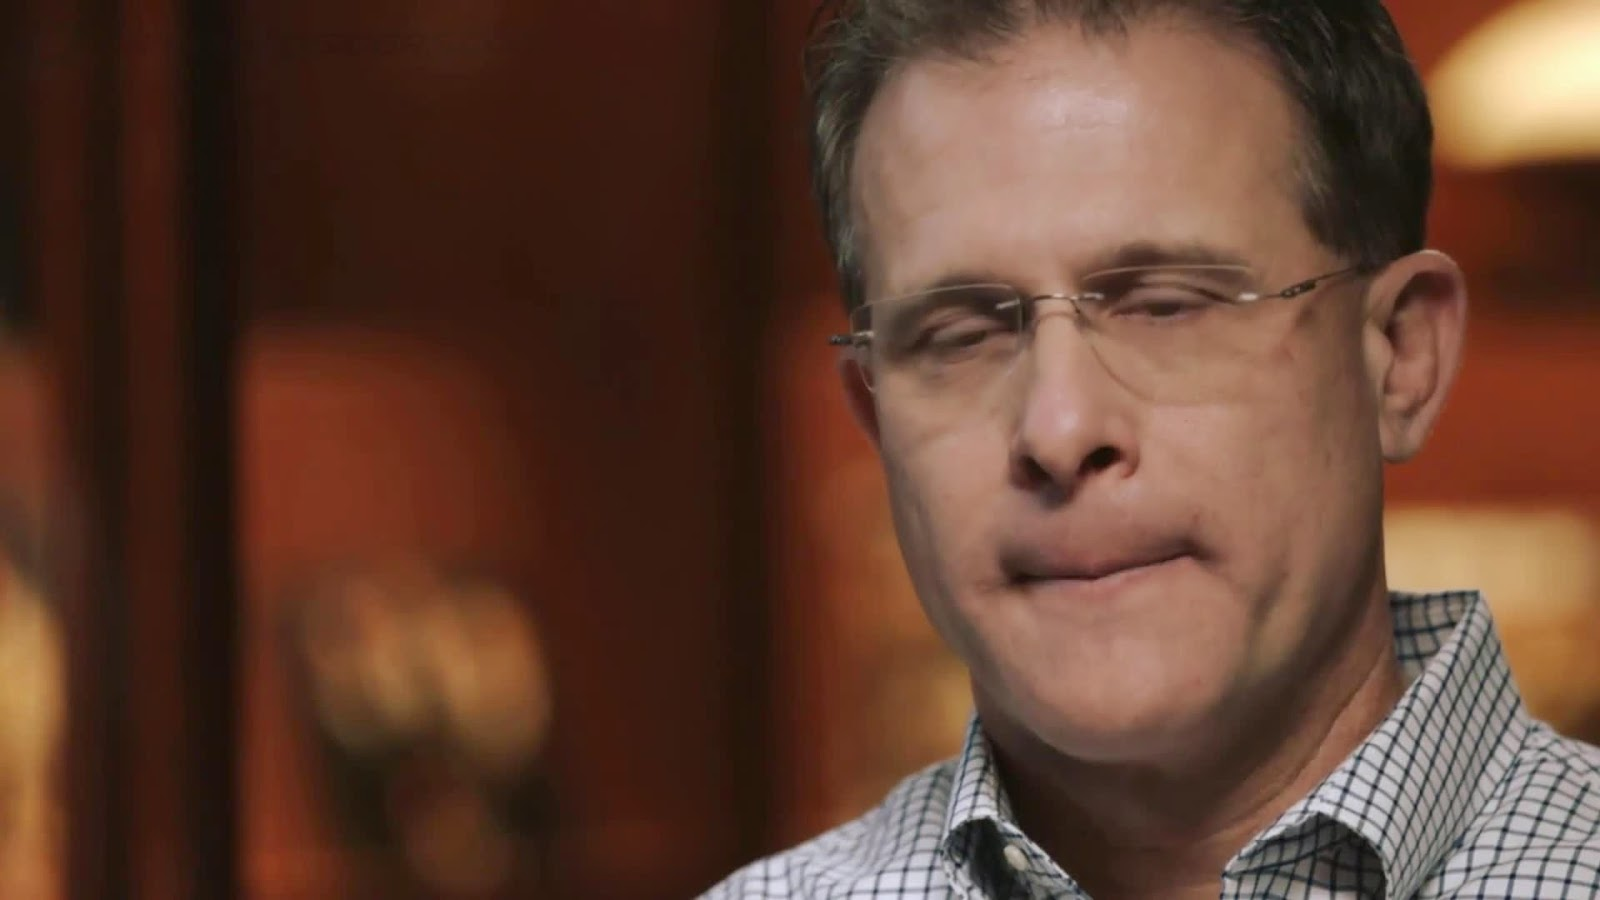 Gus Malzahn found it hard to watch inaugural College Football Playoff title game.